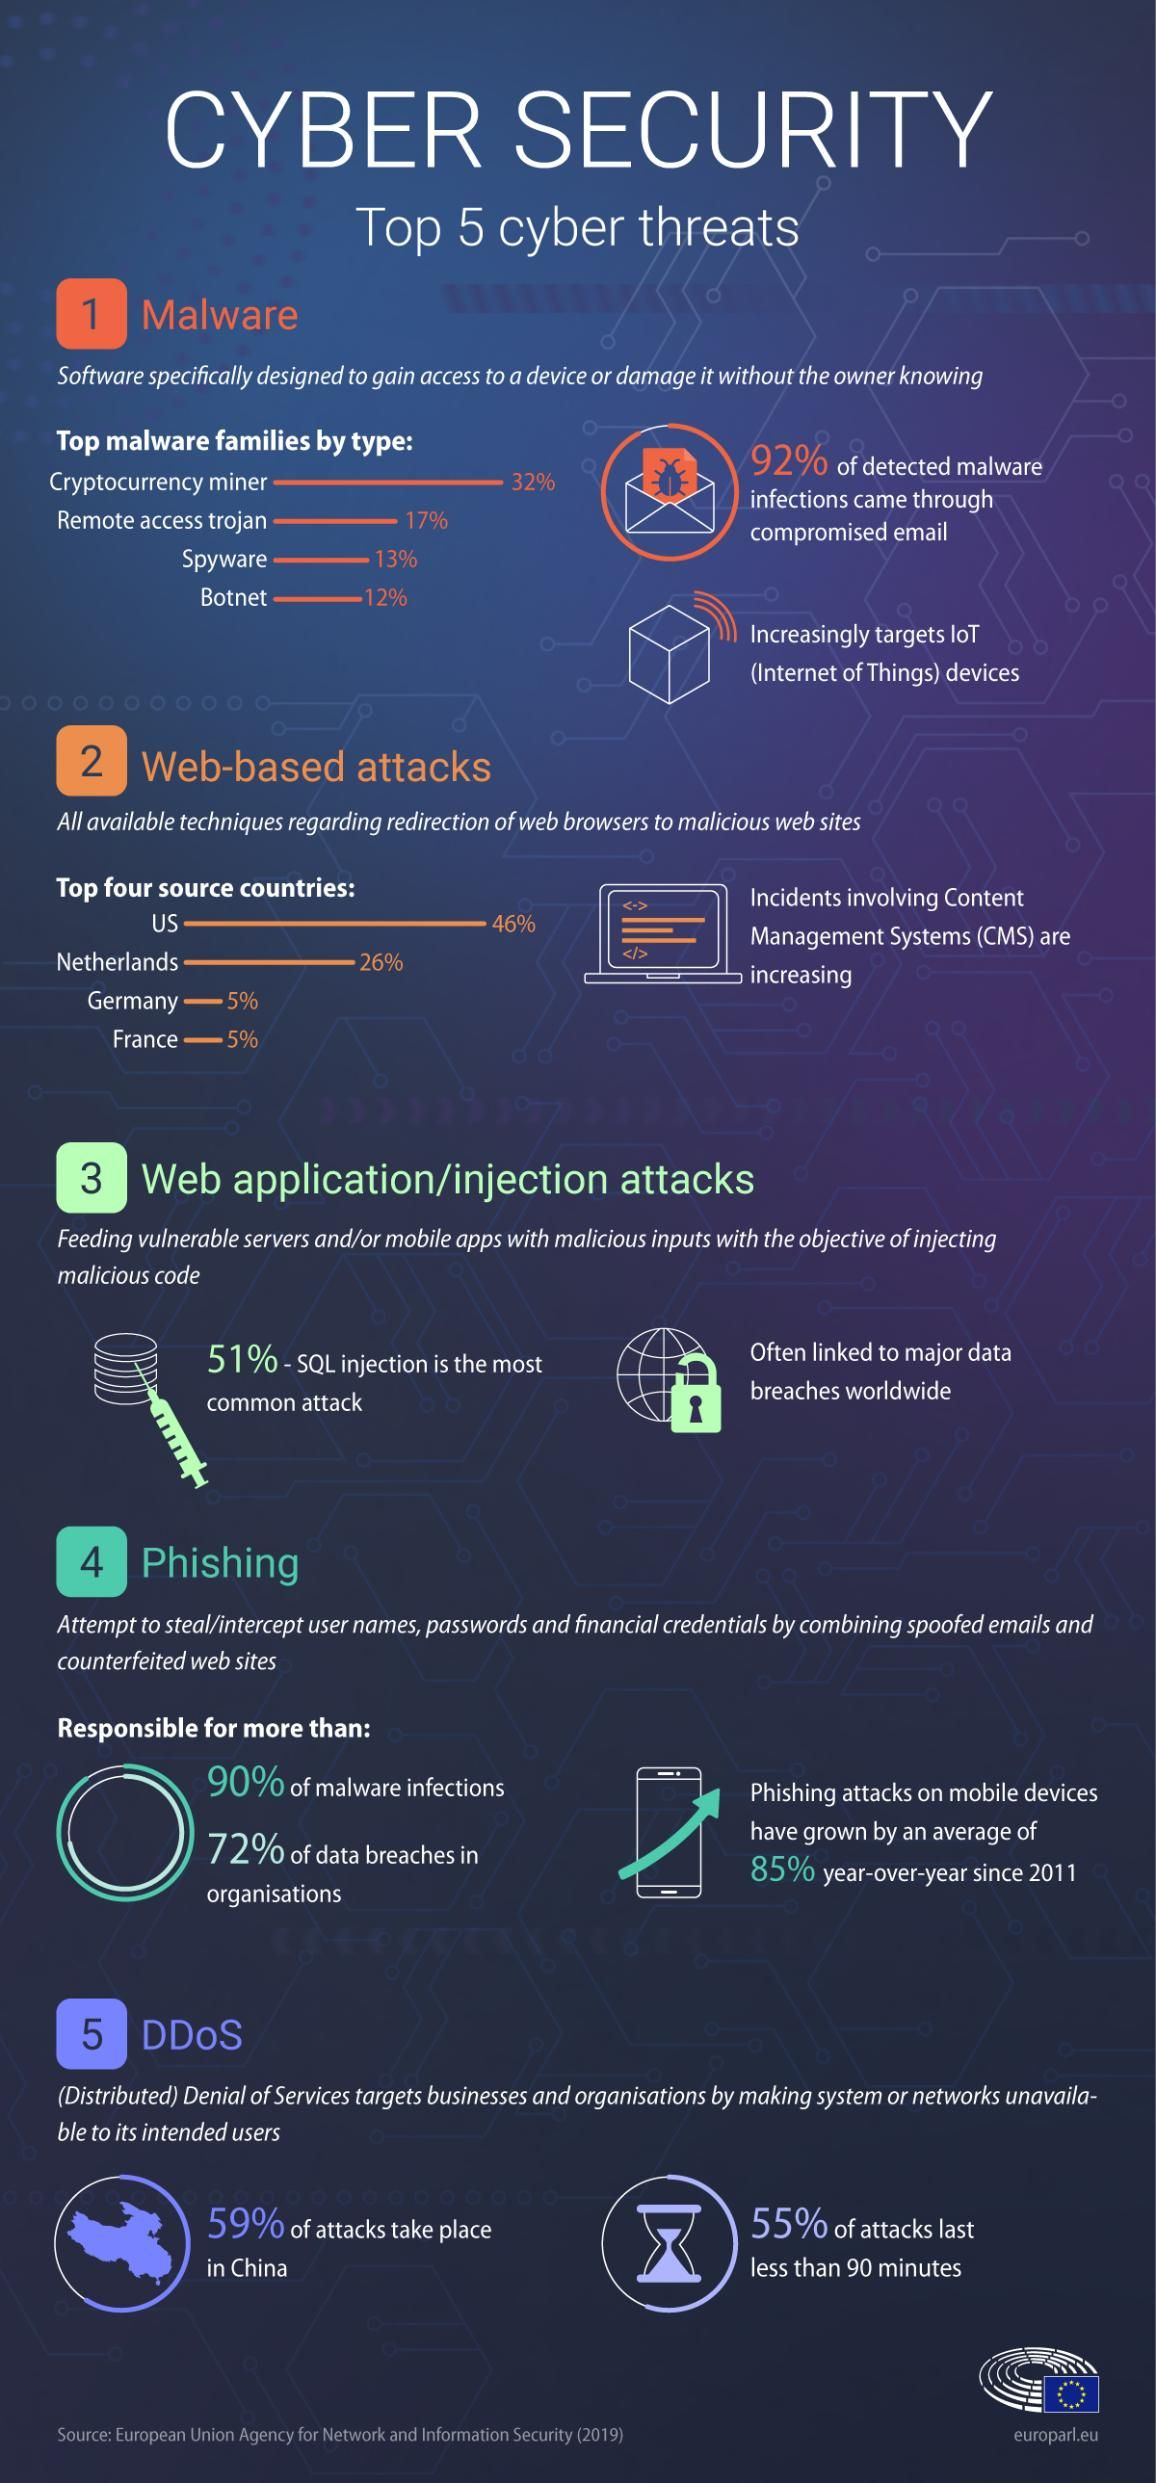 Meps Work To Boost Europe S Cyber Security Infographic With